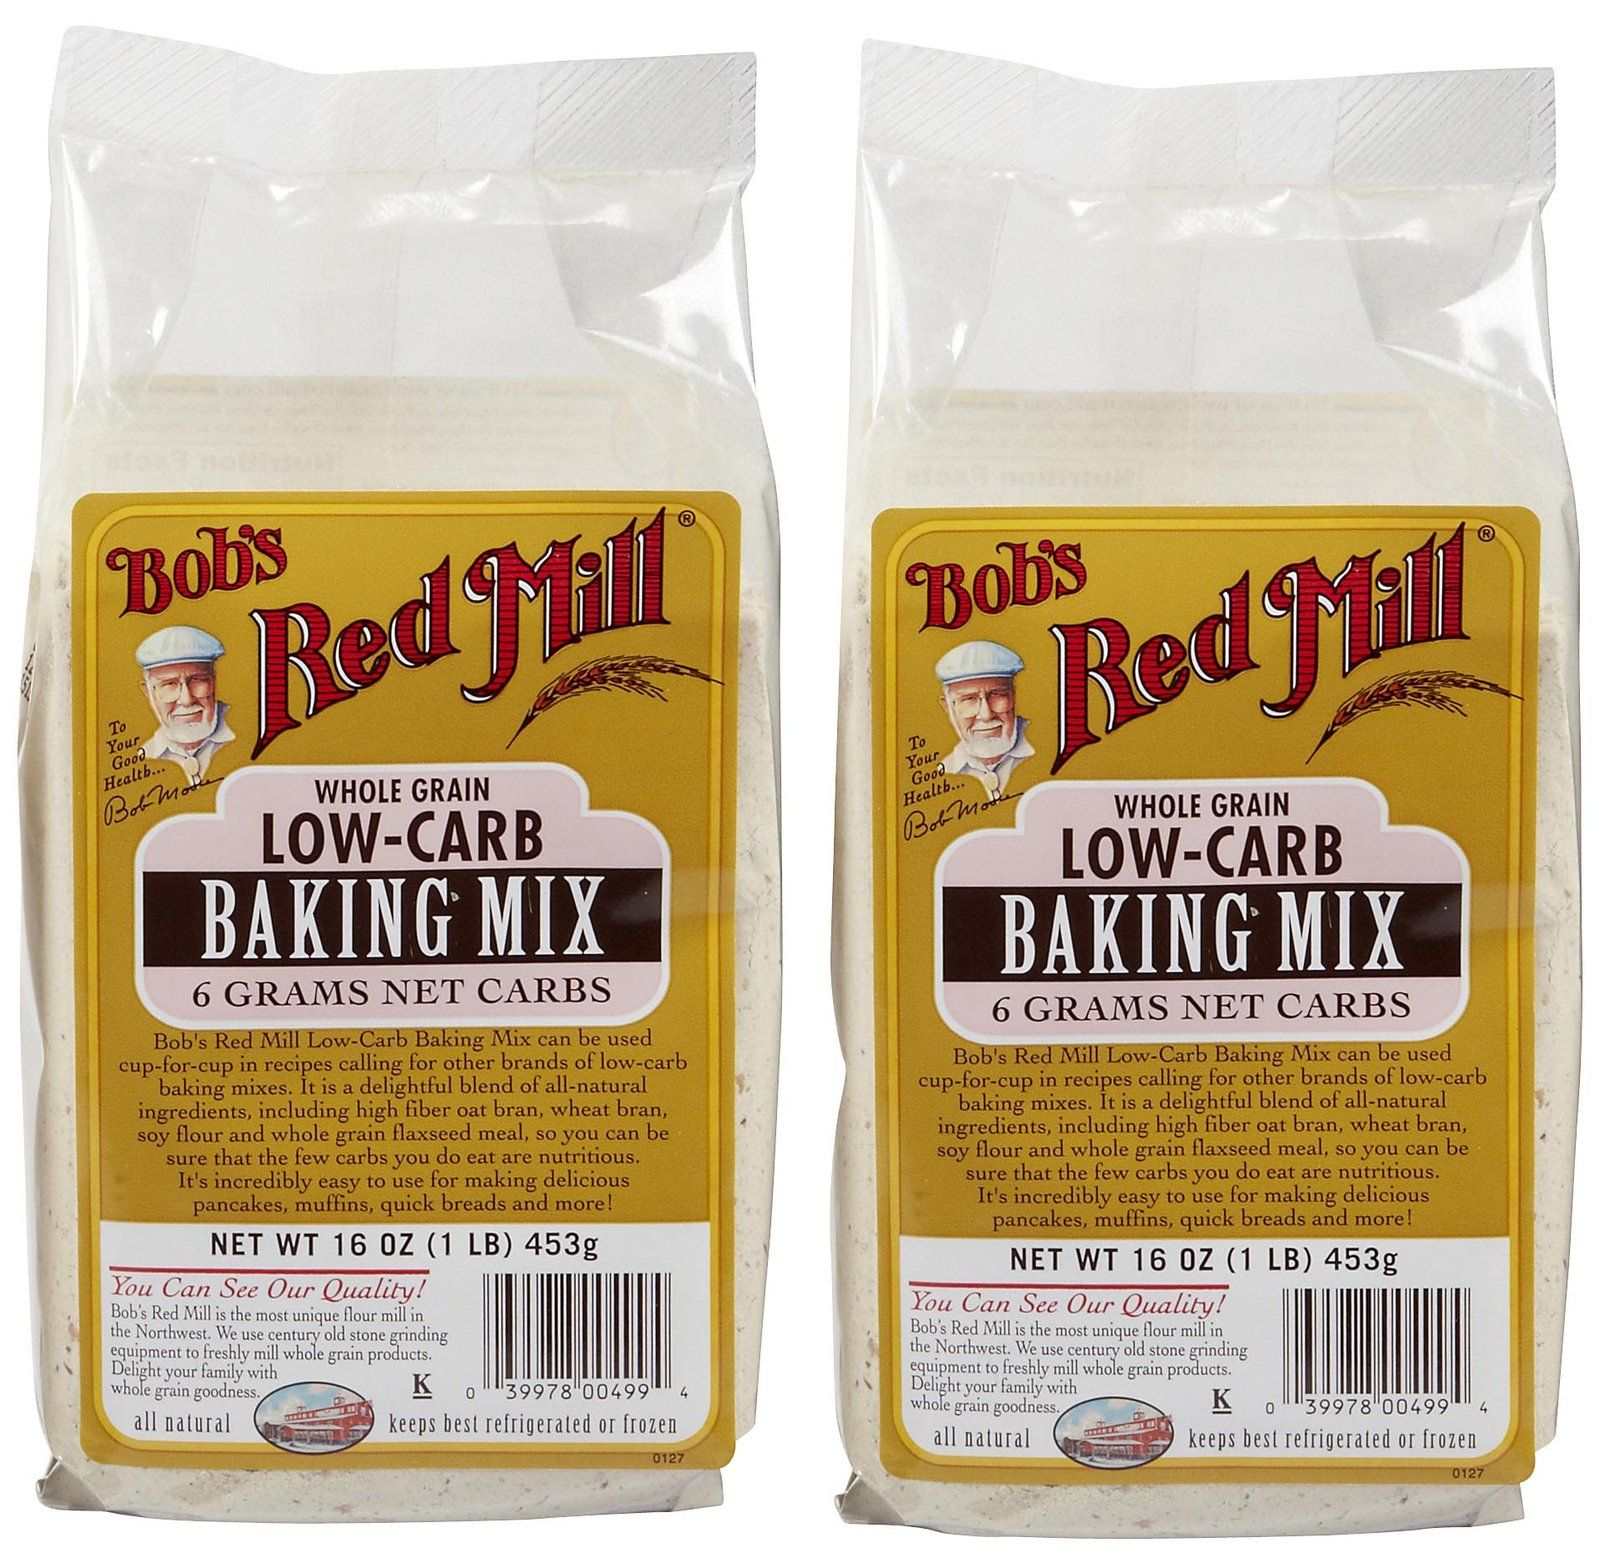 Bobs red mill low carb mixes 16 oz 2 pk whole grain